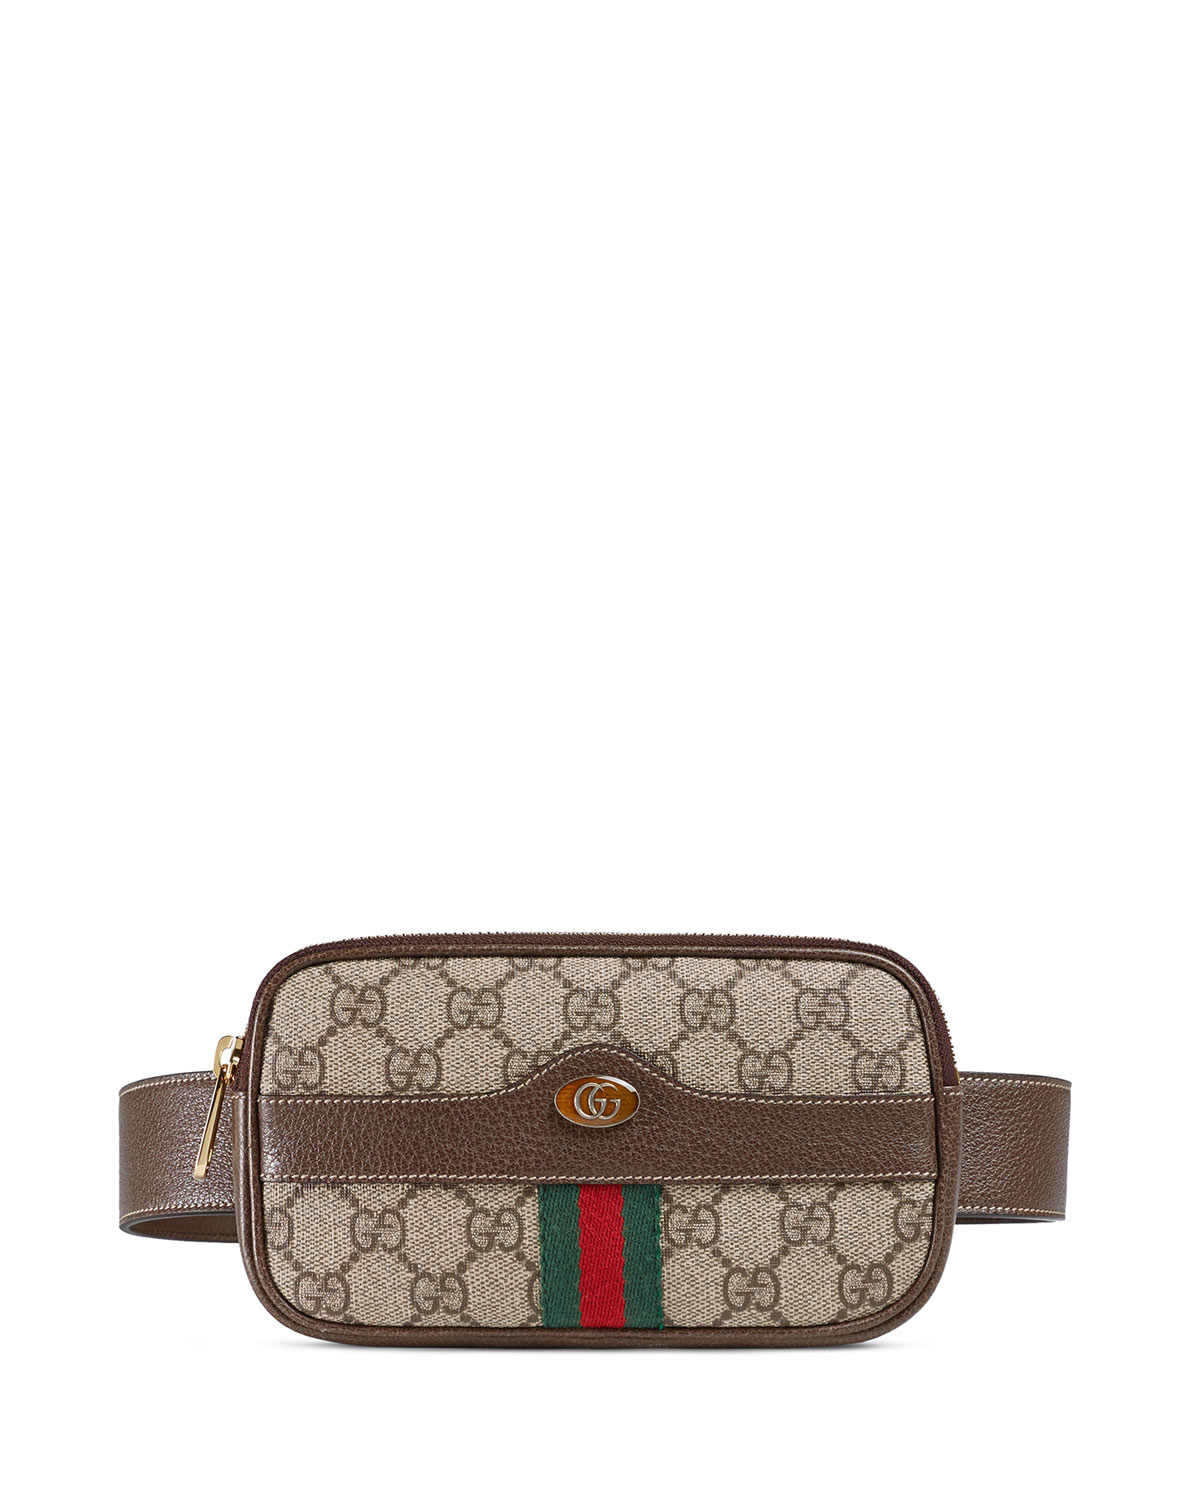 194cfb86ff24 Gucci Ophidia GG Supreme Canvas Belt Bag